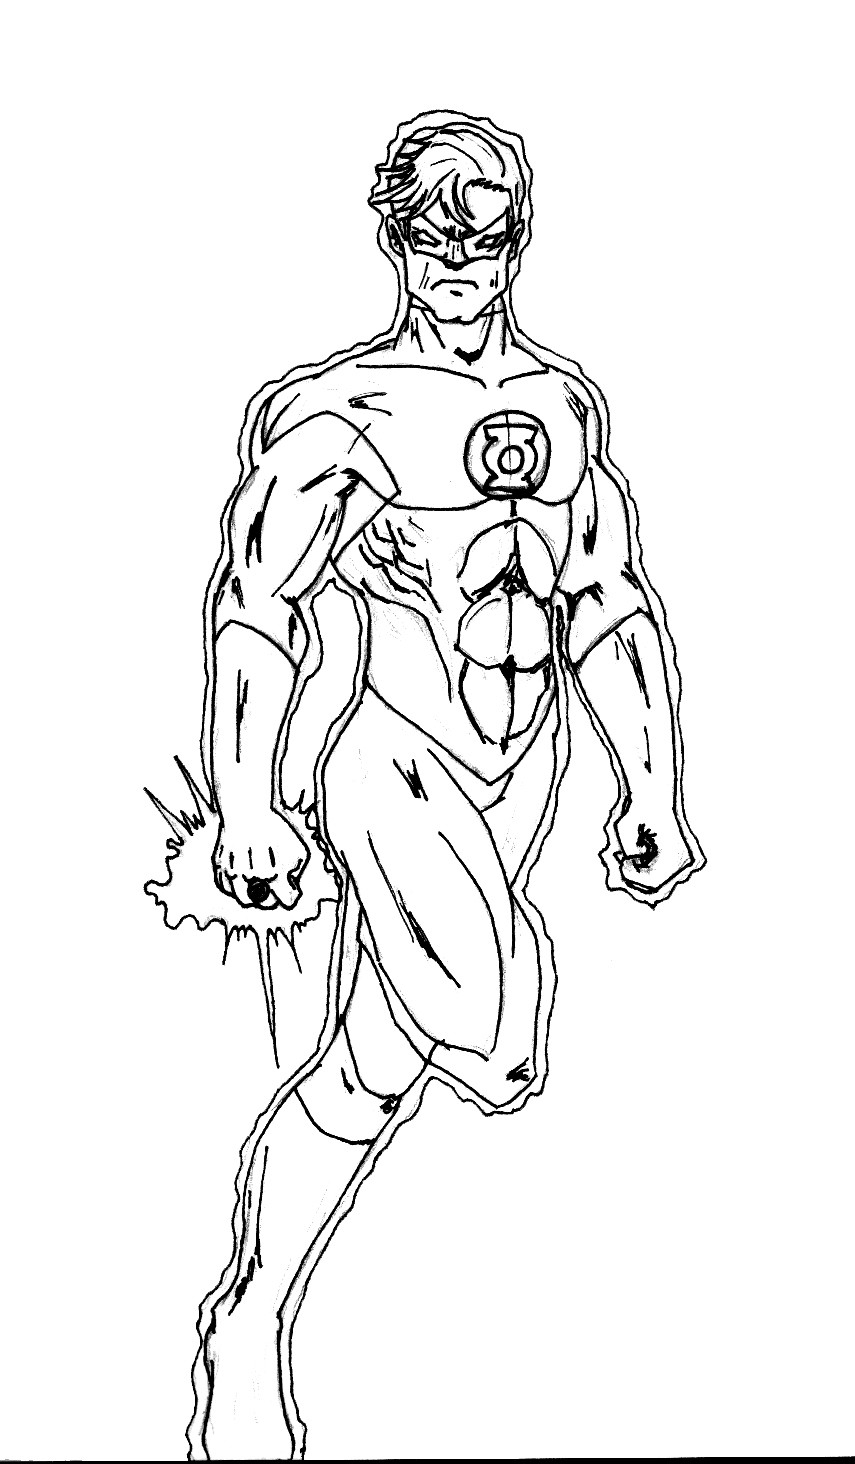 Green Lantern Coloring Pages Green Lantern Coloring Pages All New Bitslice